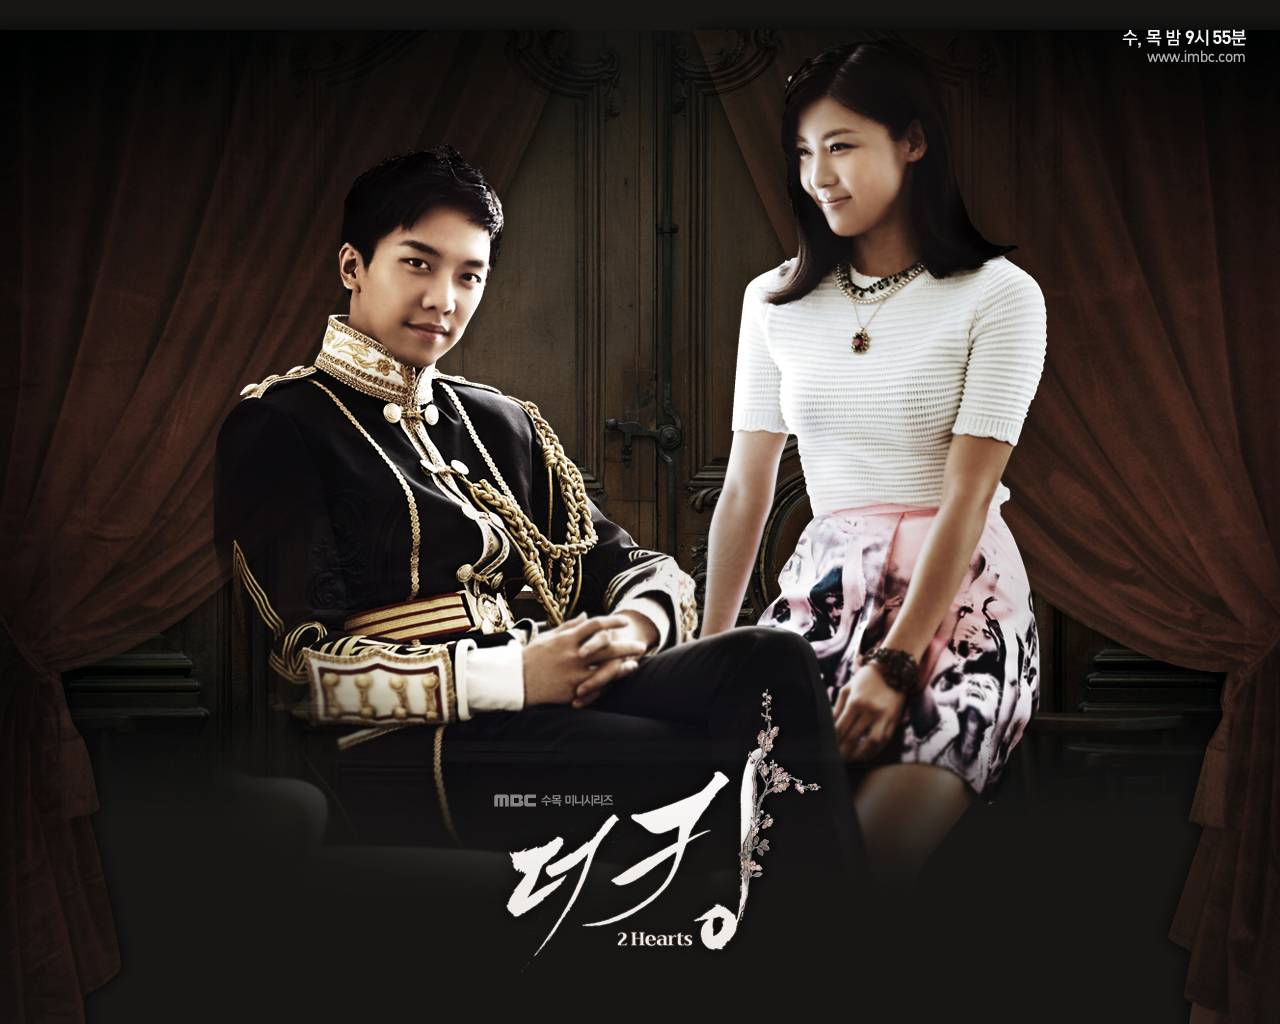 Image result for the king 2 hearts